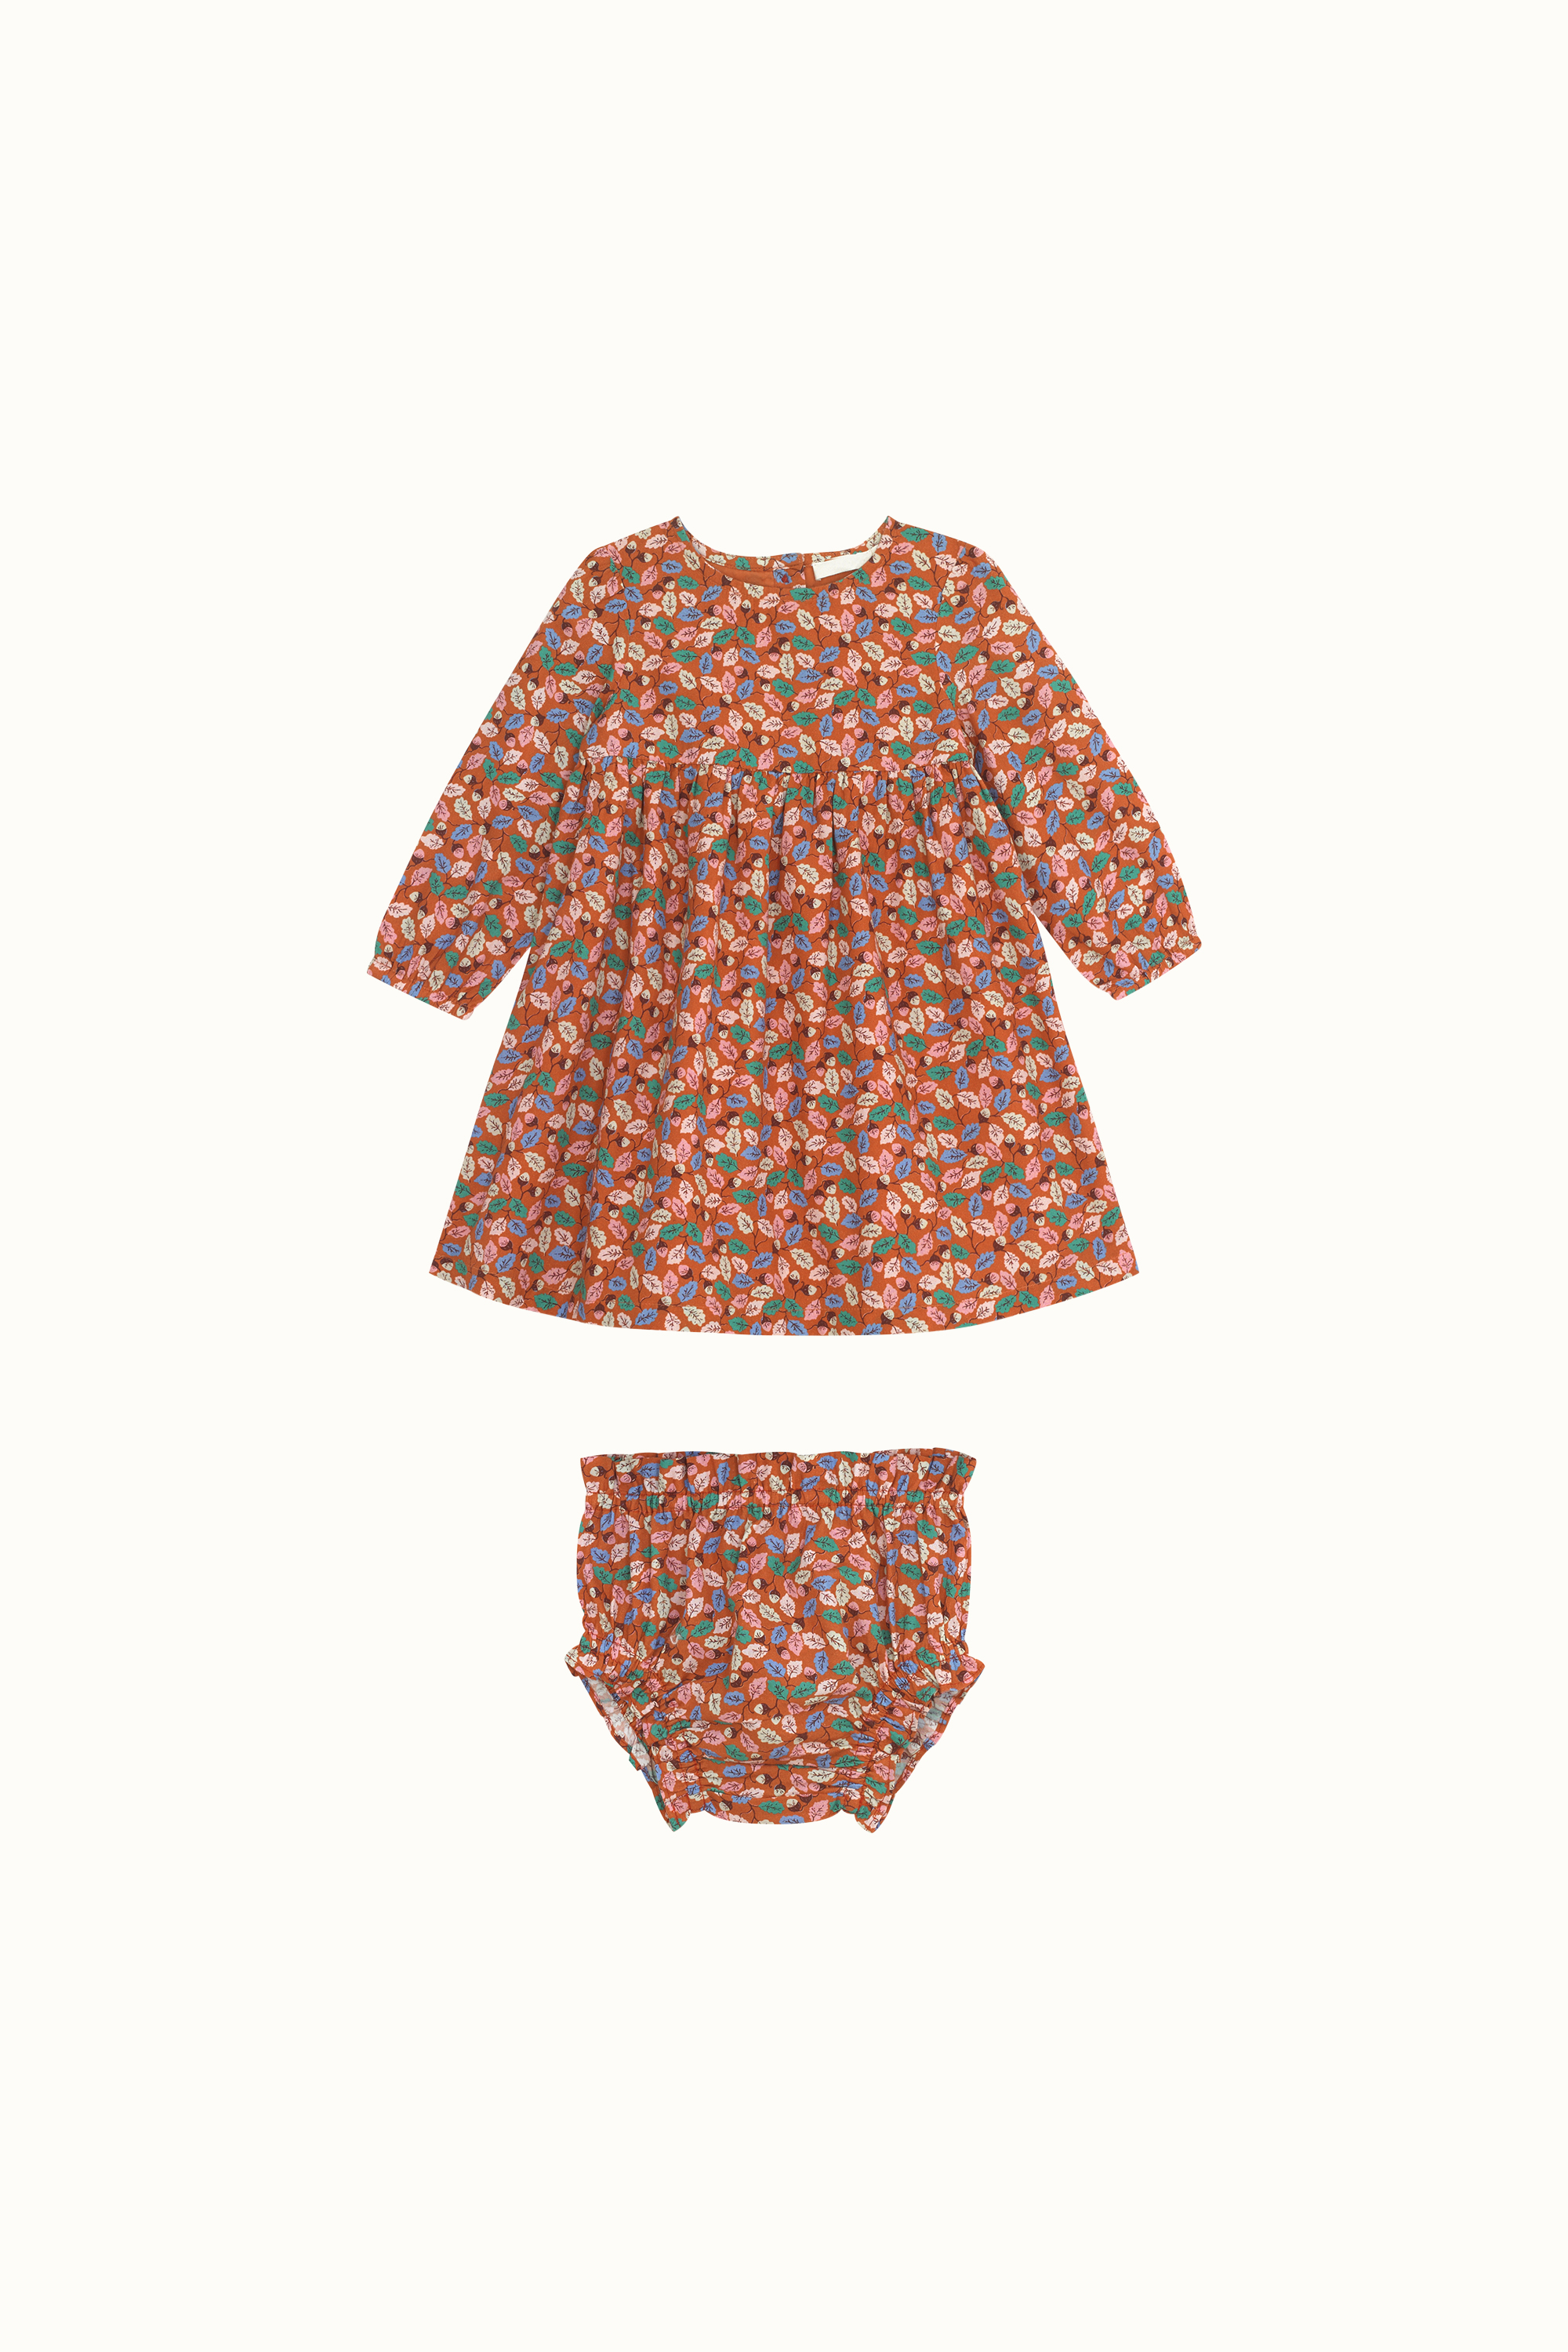 Cath Kidston Trailing Leaves Baby Evie Dress in Red Brown, 0-3 Mo